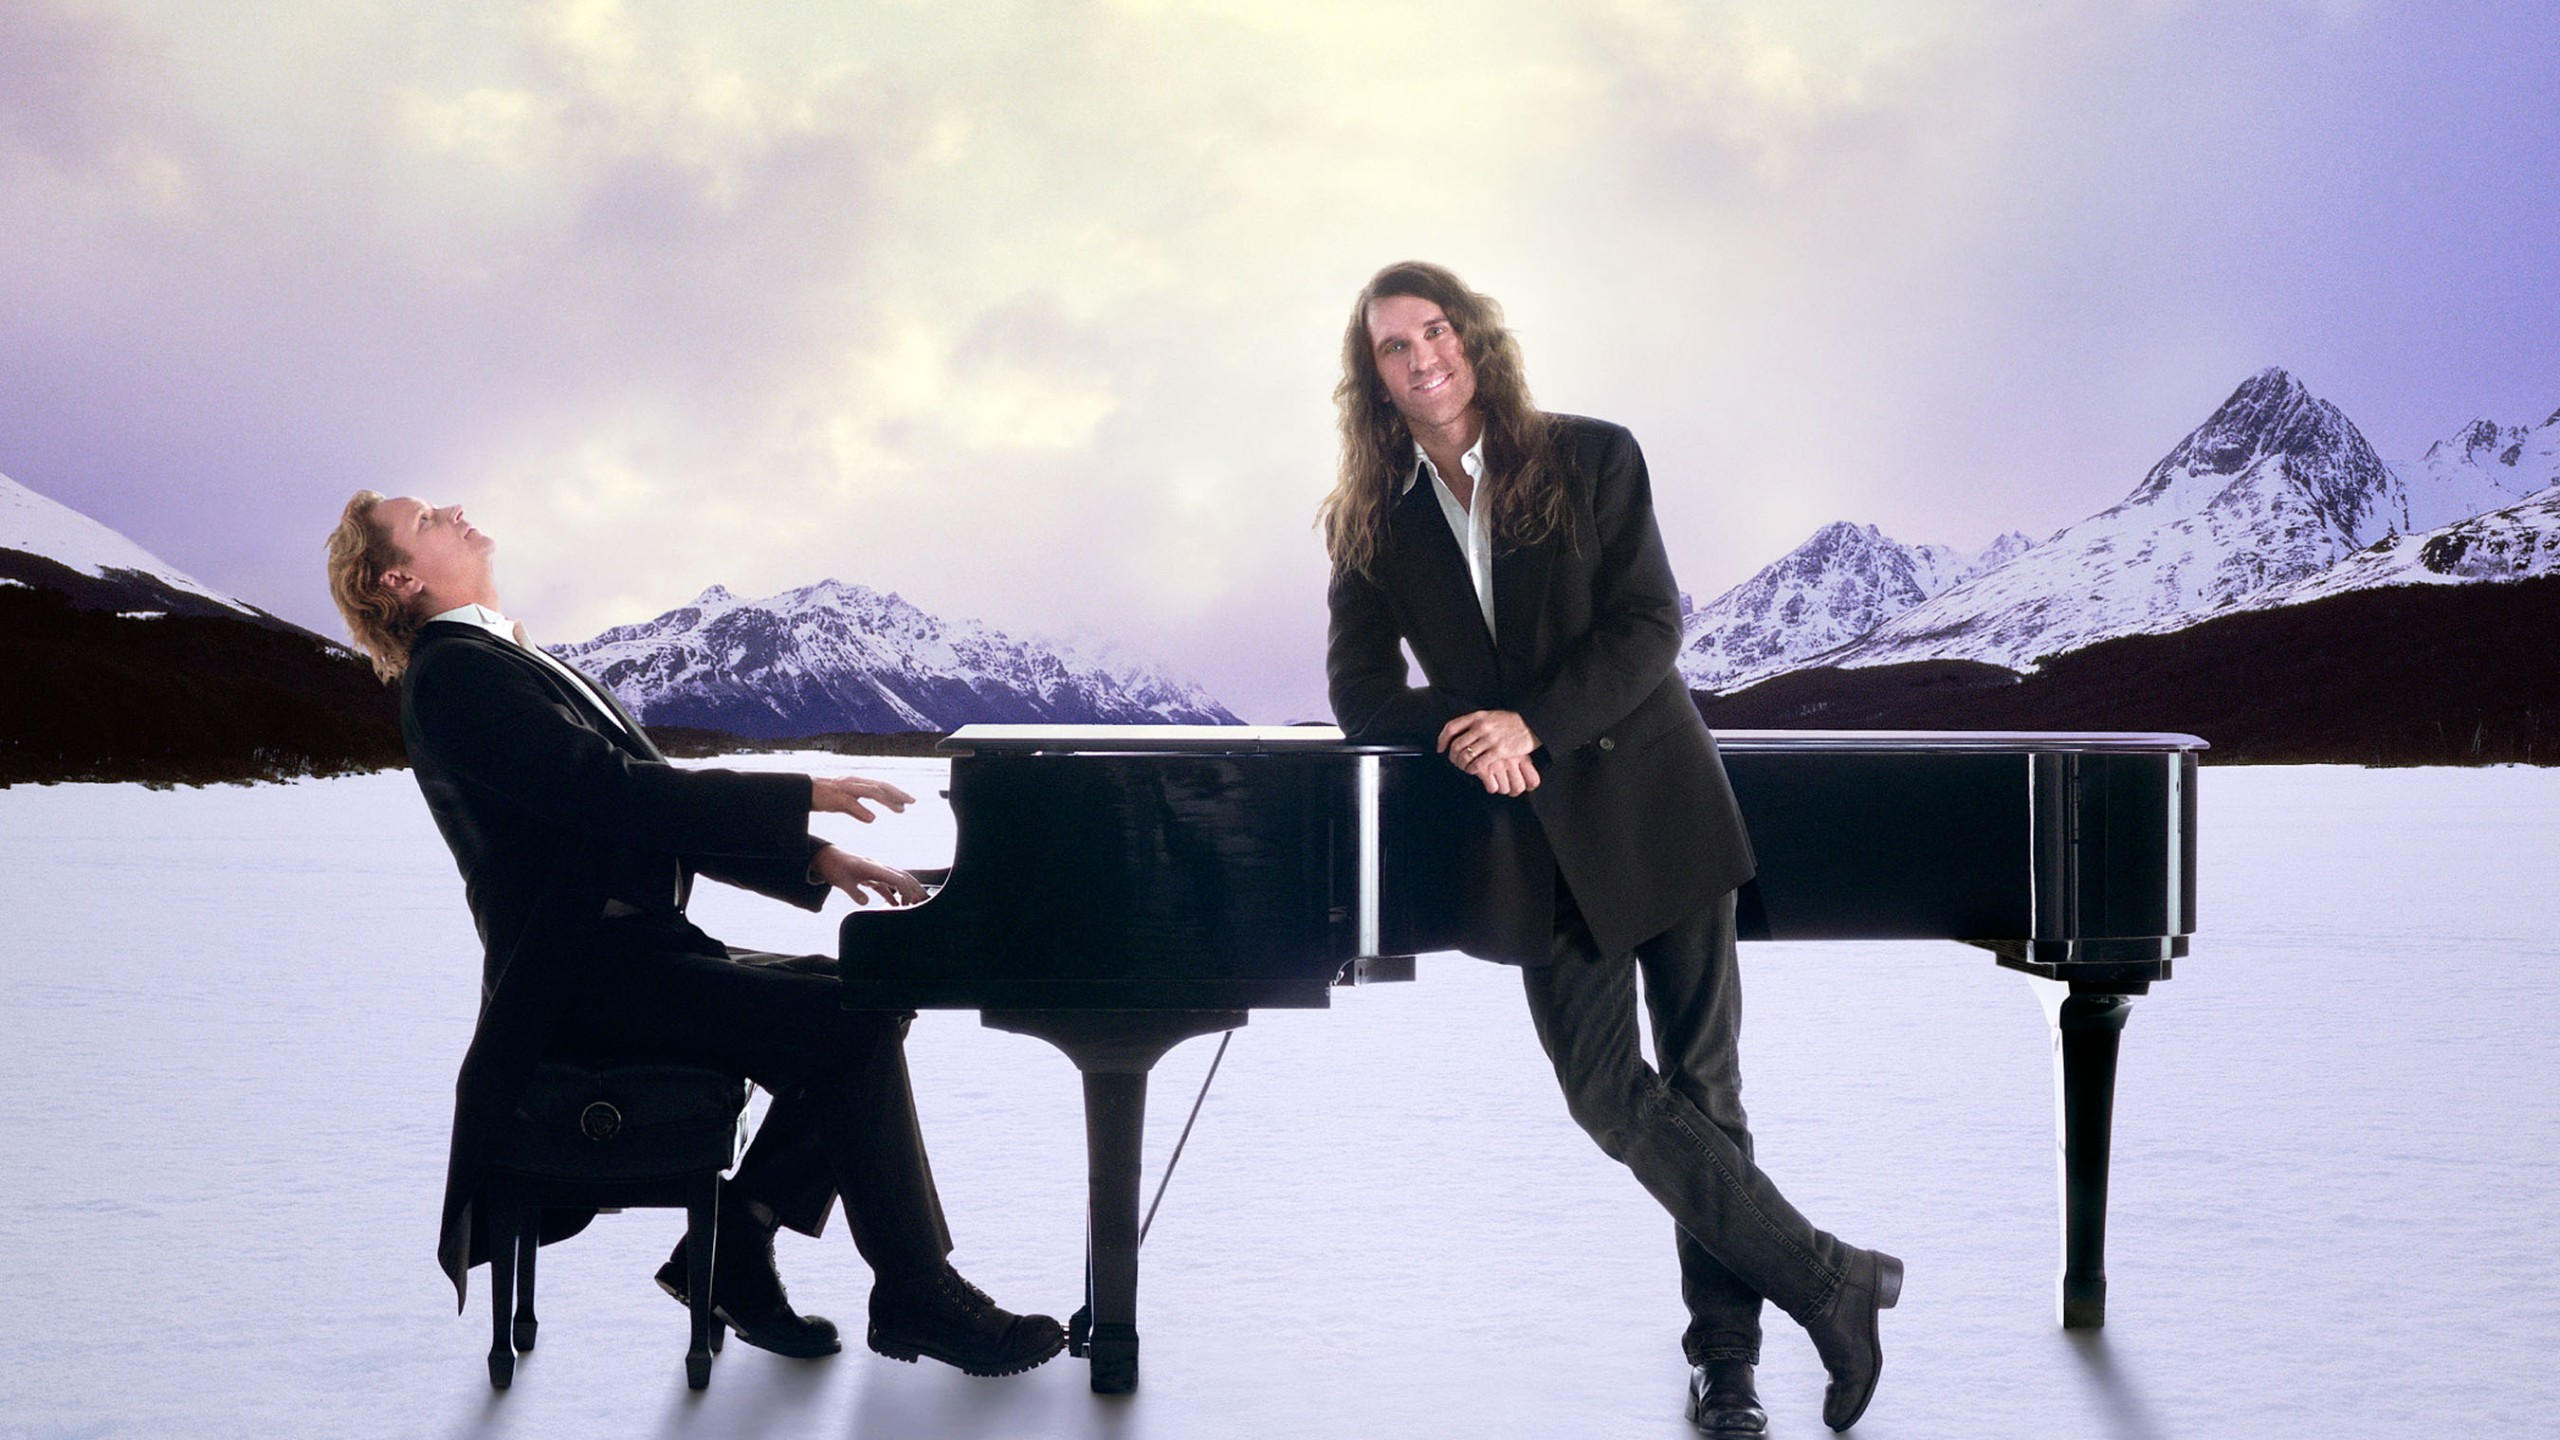 TRANS-SIBERIAN ORCHESTRA EMBARKS ON HOLIDAY TOUR_176890